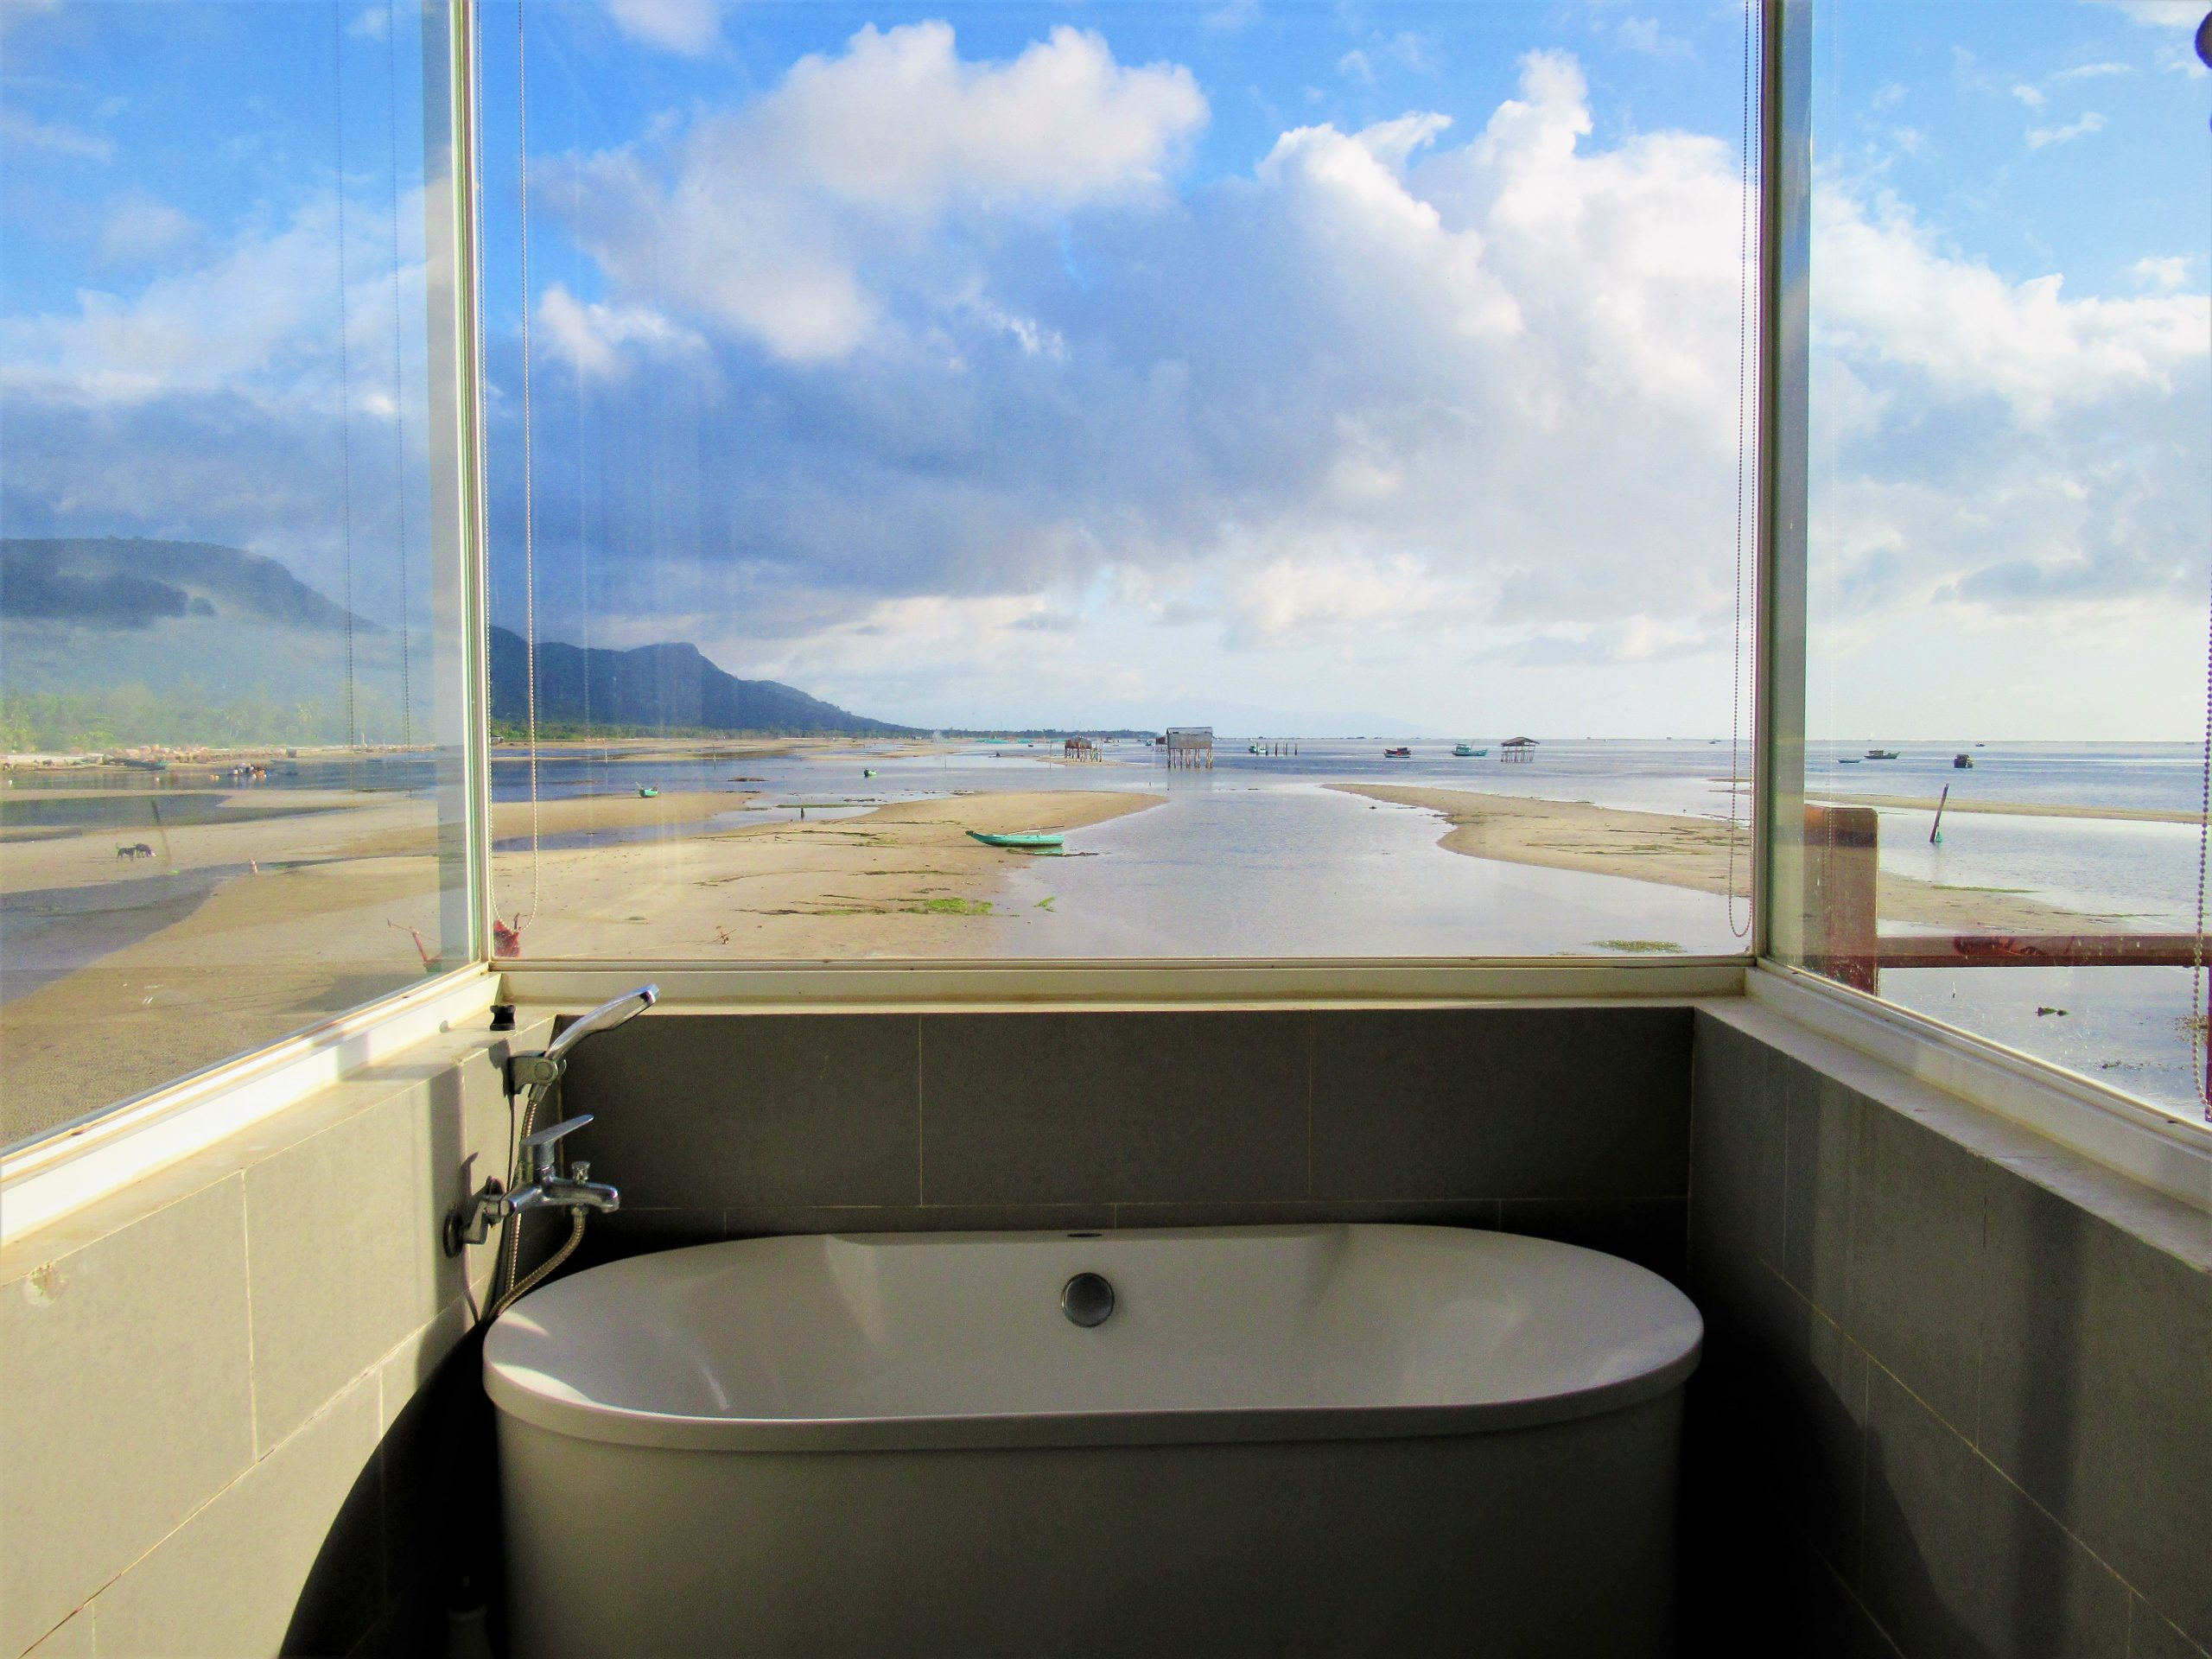 View from the bathroom of a Sea Bungalow at The Pier